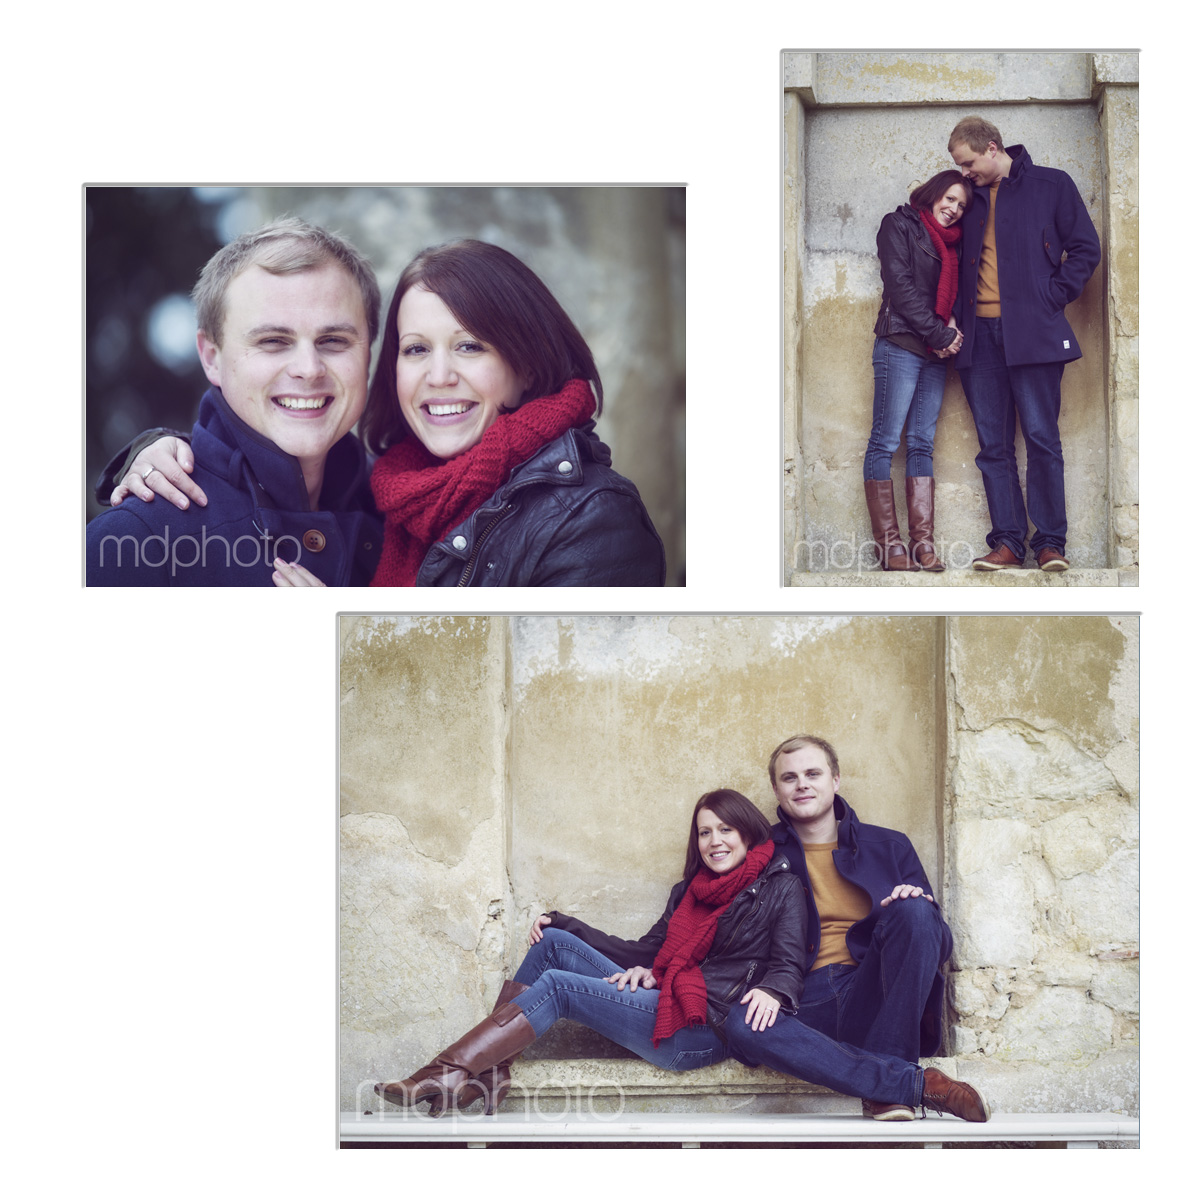 Stowe_Park_Engagement_Photo_Shoot_Ingleby_Barwick_Yarm_Wedding_mdphoto_6